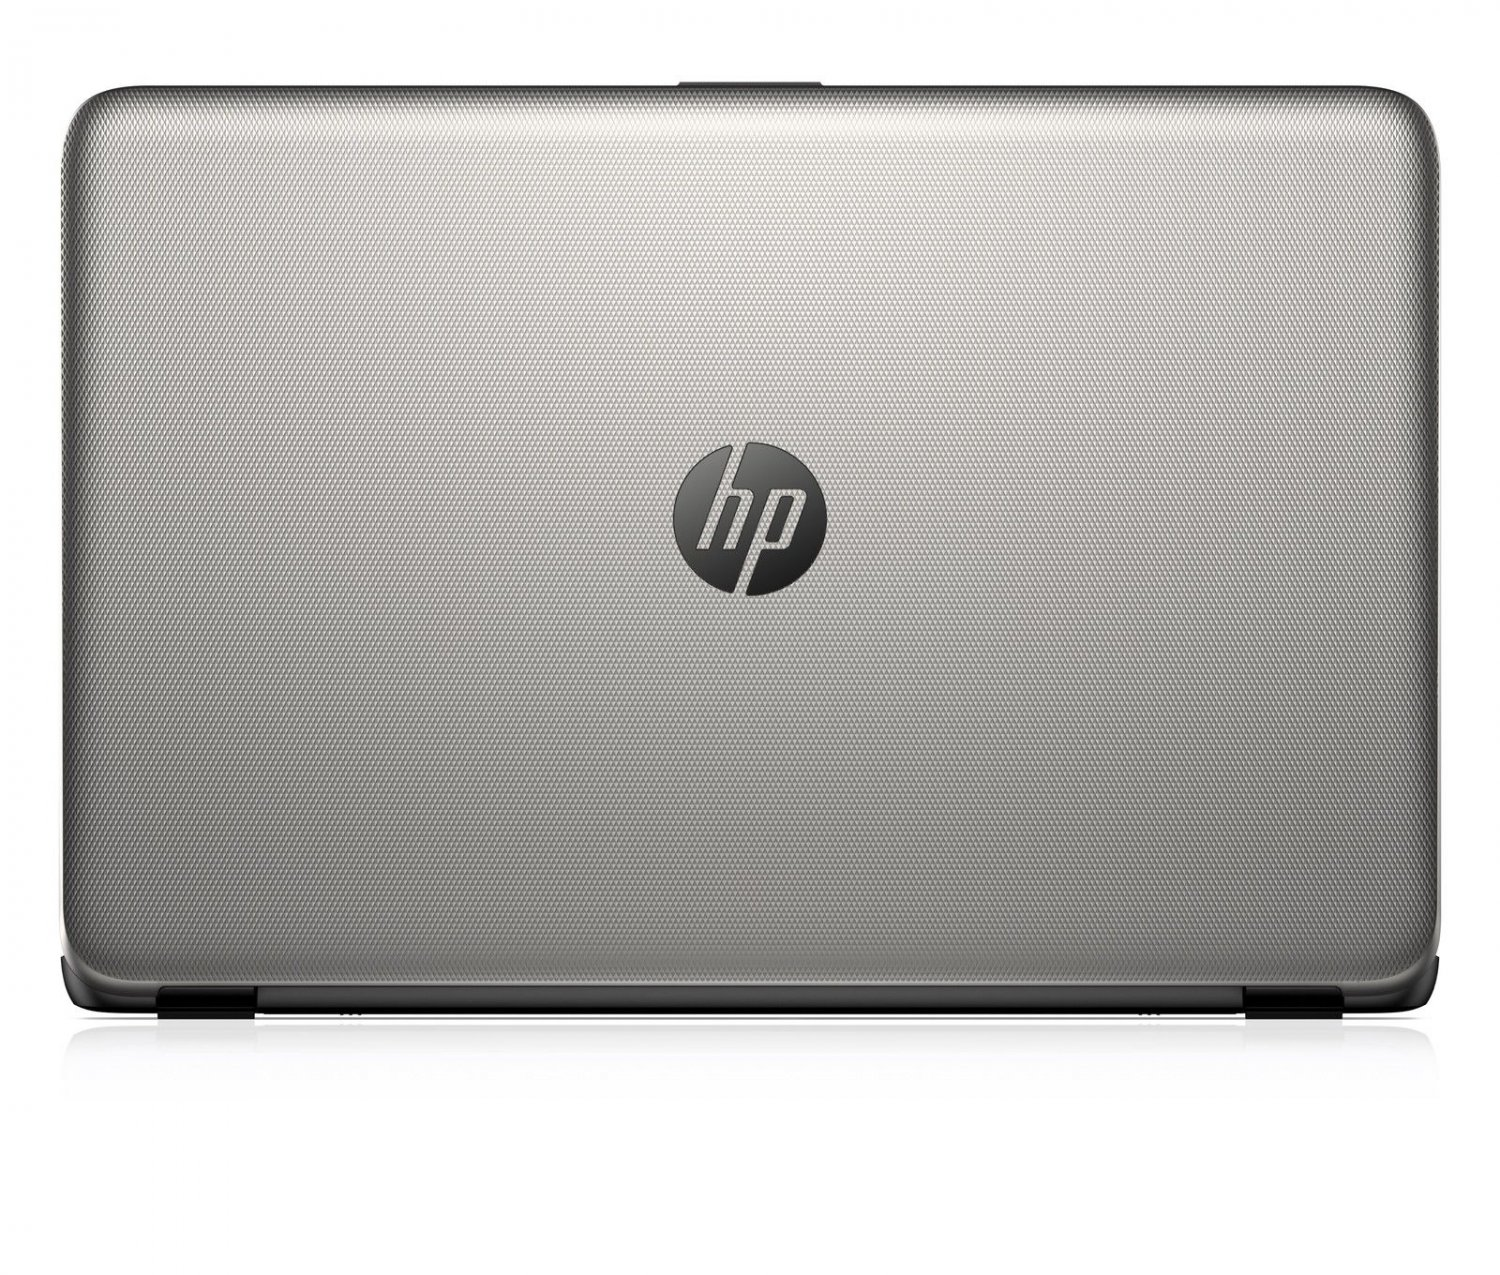 "HP Pavilion 17-X105DS 17.3"" i3-7100U 2.3GHz 2TB 8GB DVDRW Touchscreen Laptop"